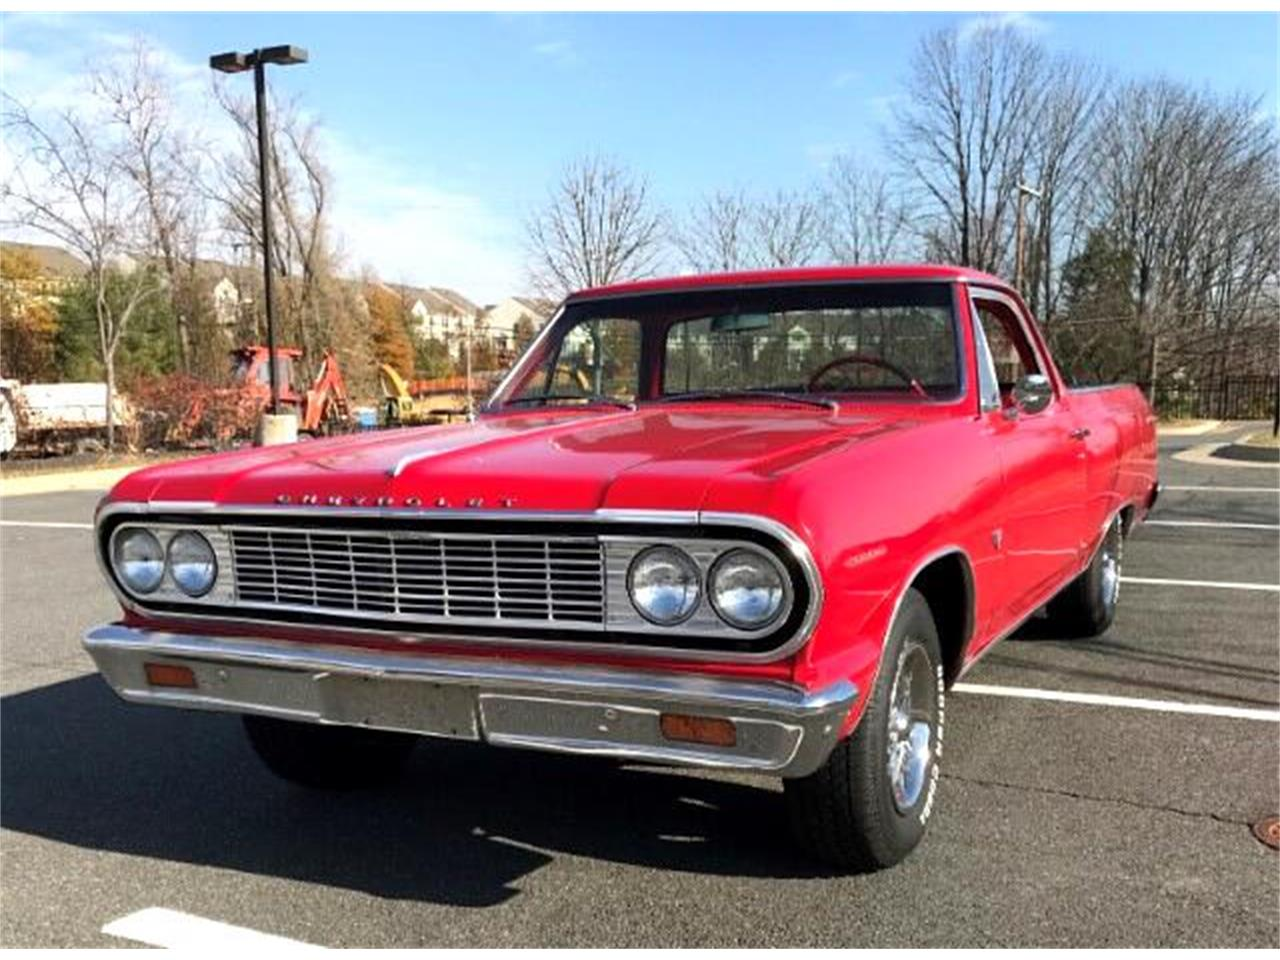 1964 Chevrolet El Camino (CC-1414626) for sale in Harpers Ferry, West Virginia